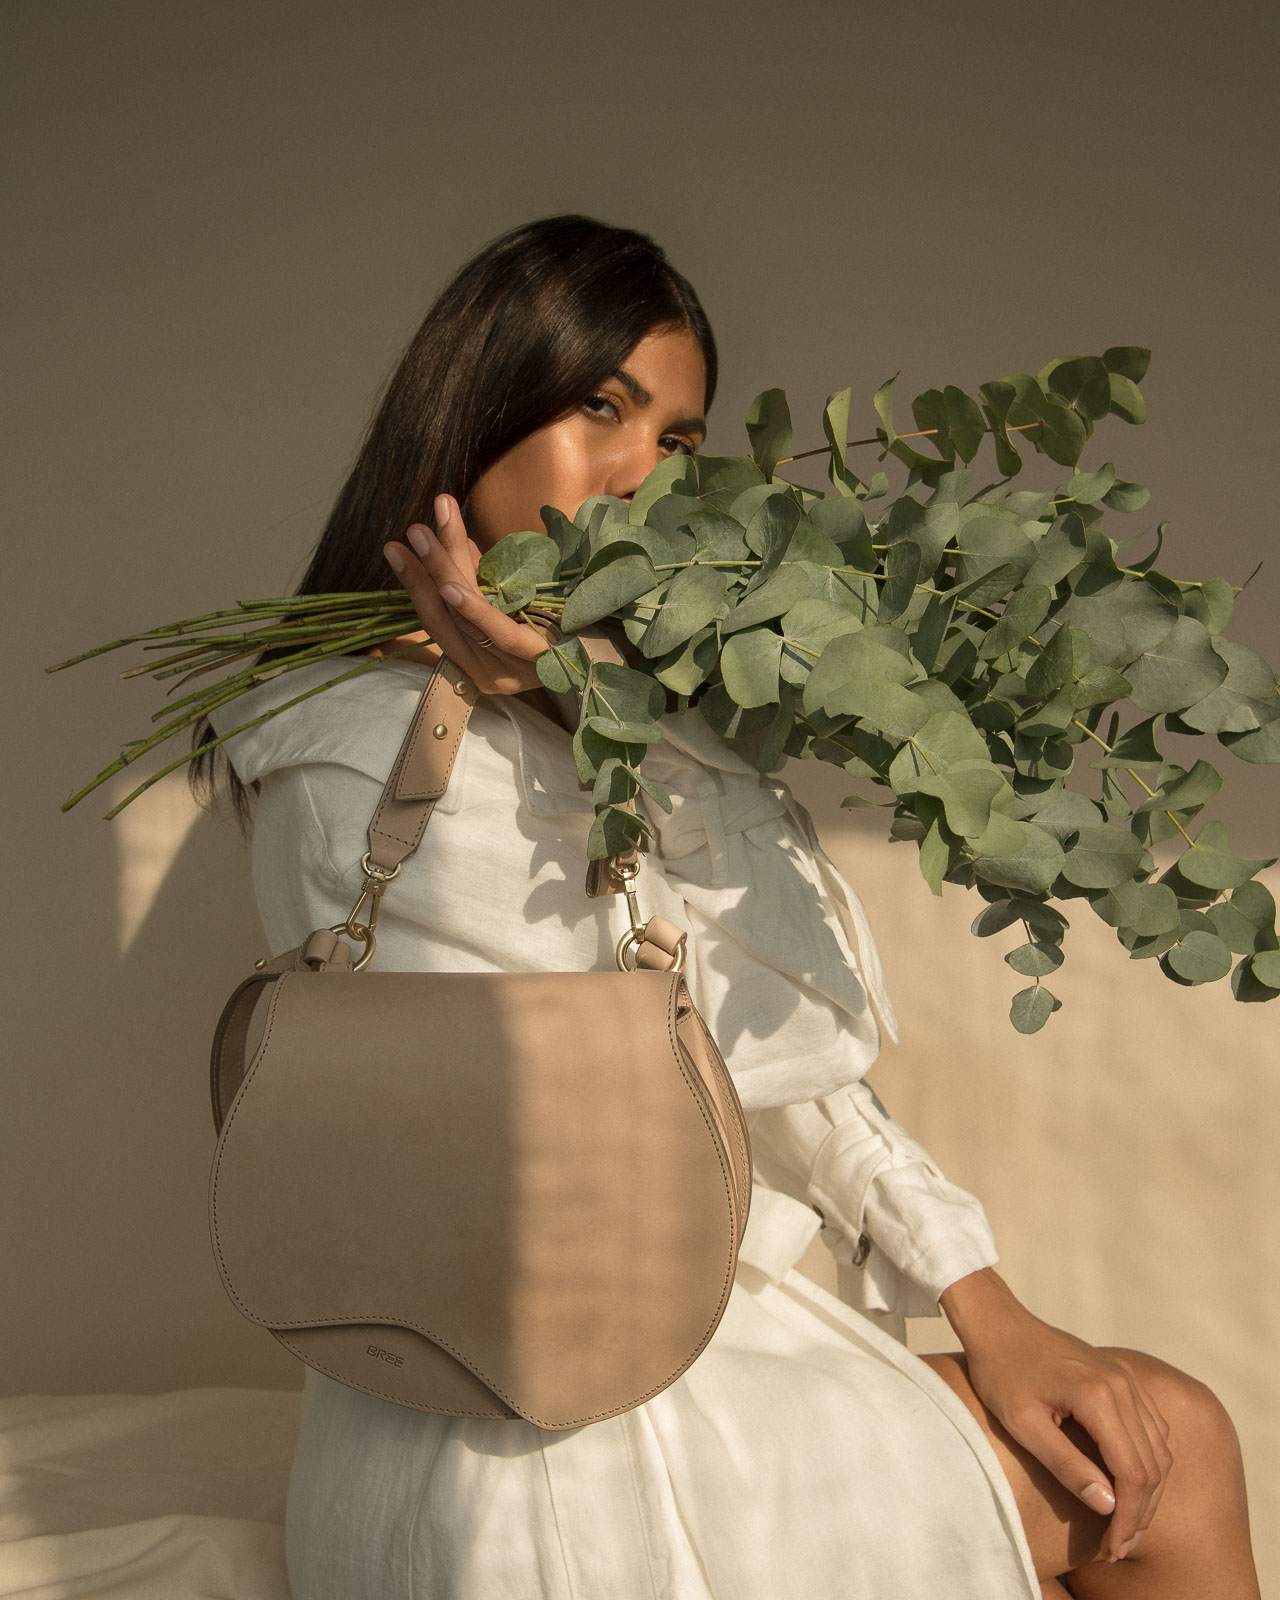 storm wears bree nature bag in the color hummus with a white blanche copenhagen linen coat and eucalyptus at Studio230 shot by Marius Knieling